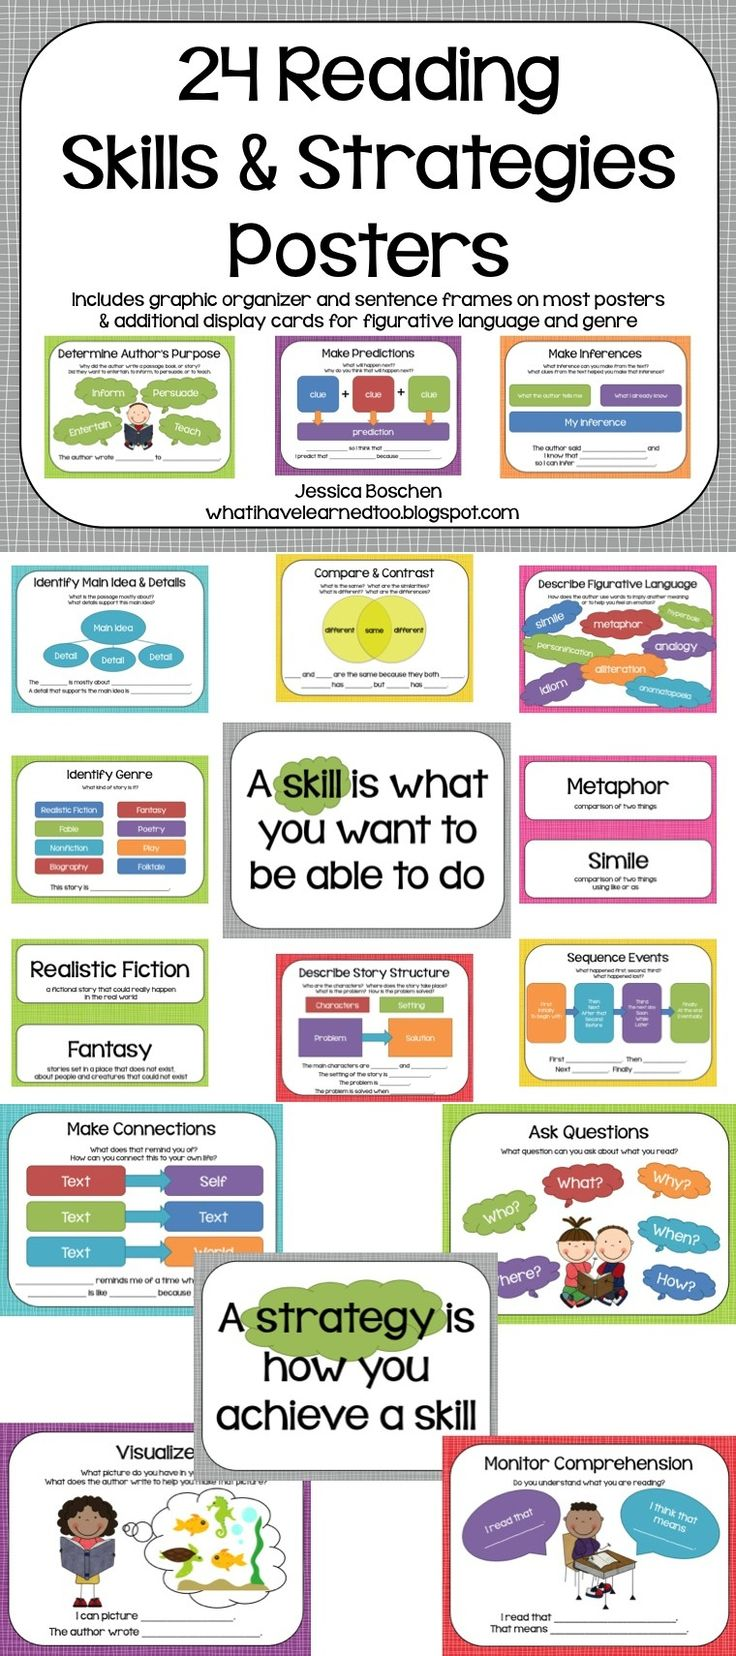 Included are 24 reading comprehension skills and strategies posters. Each poster has the name of the strategy, prompts that you might ask students, a sample graphic organizer, and sample student responses with sentence frames (when applicable).